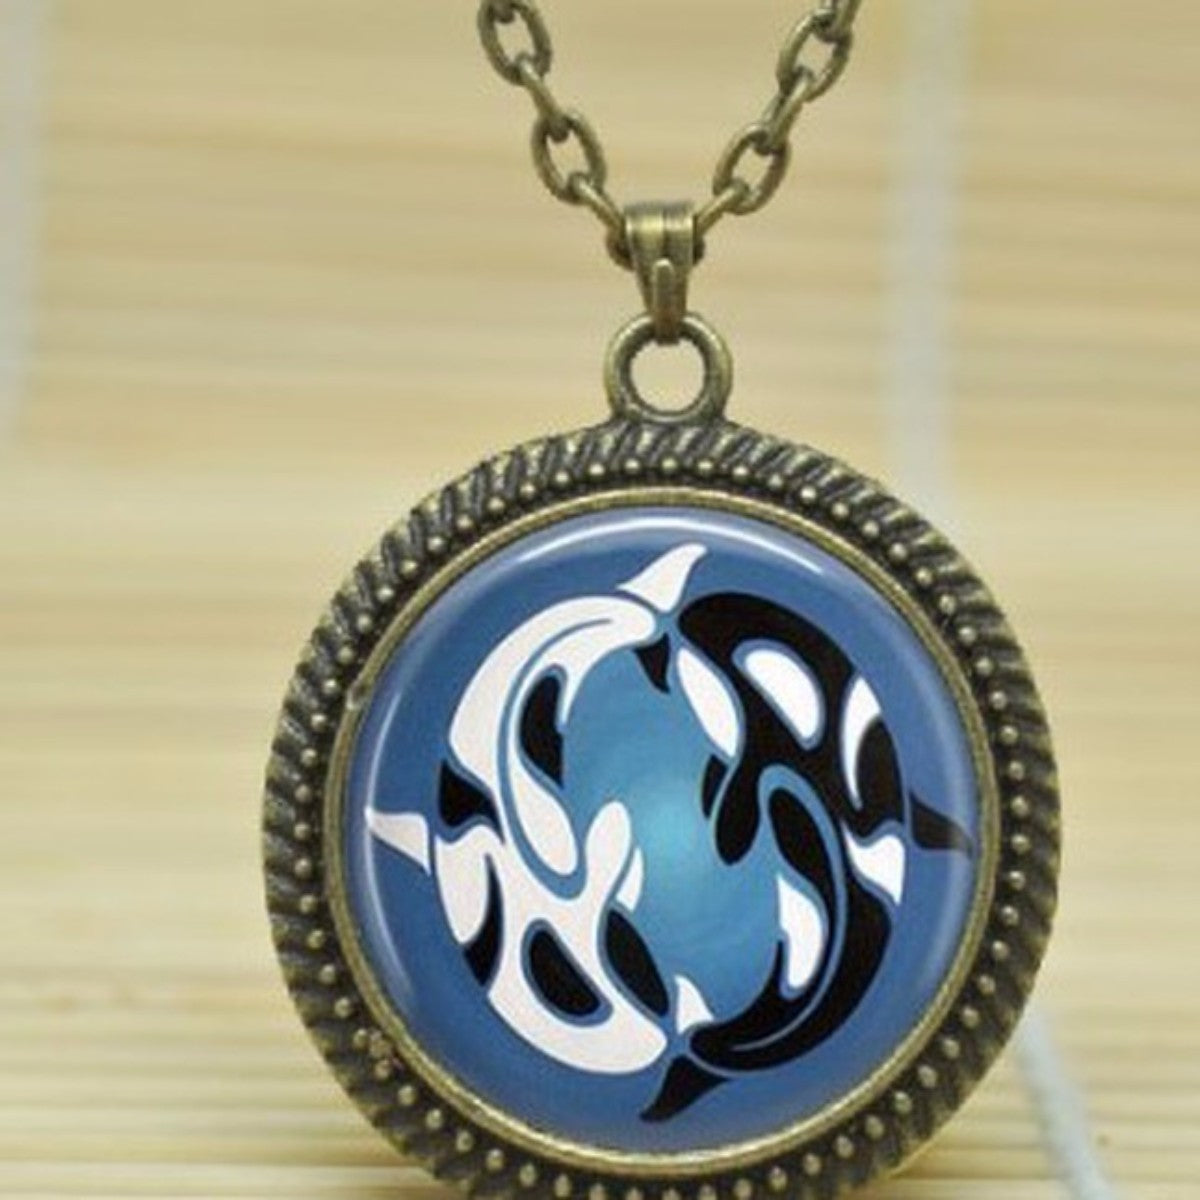 jaan-imports - Yin Yang Whales Cabochon Necklace - Khoobsurat Gift Shop - Necklace